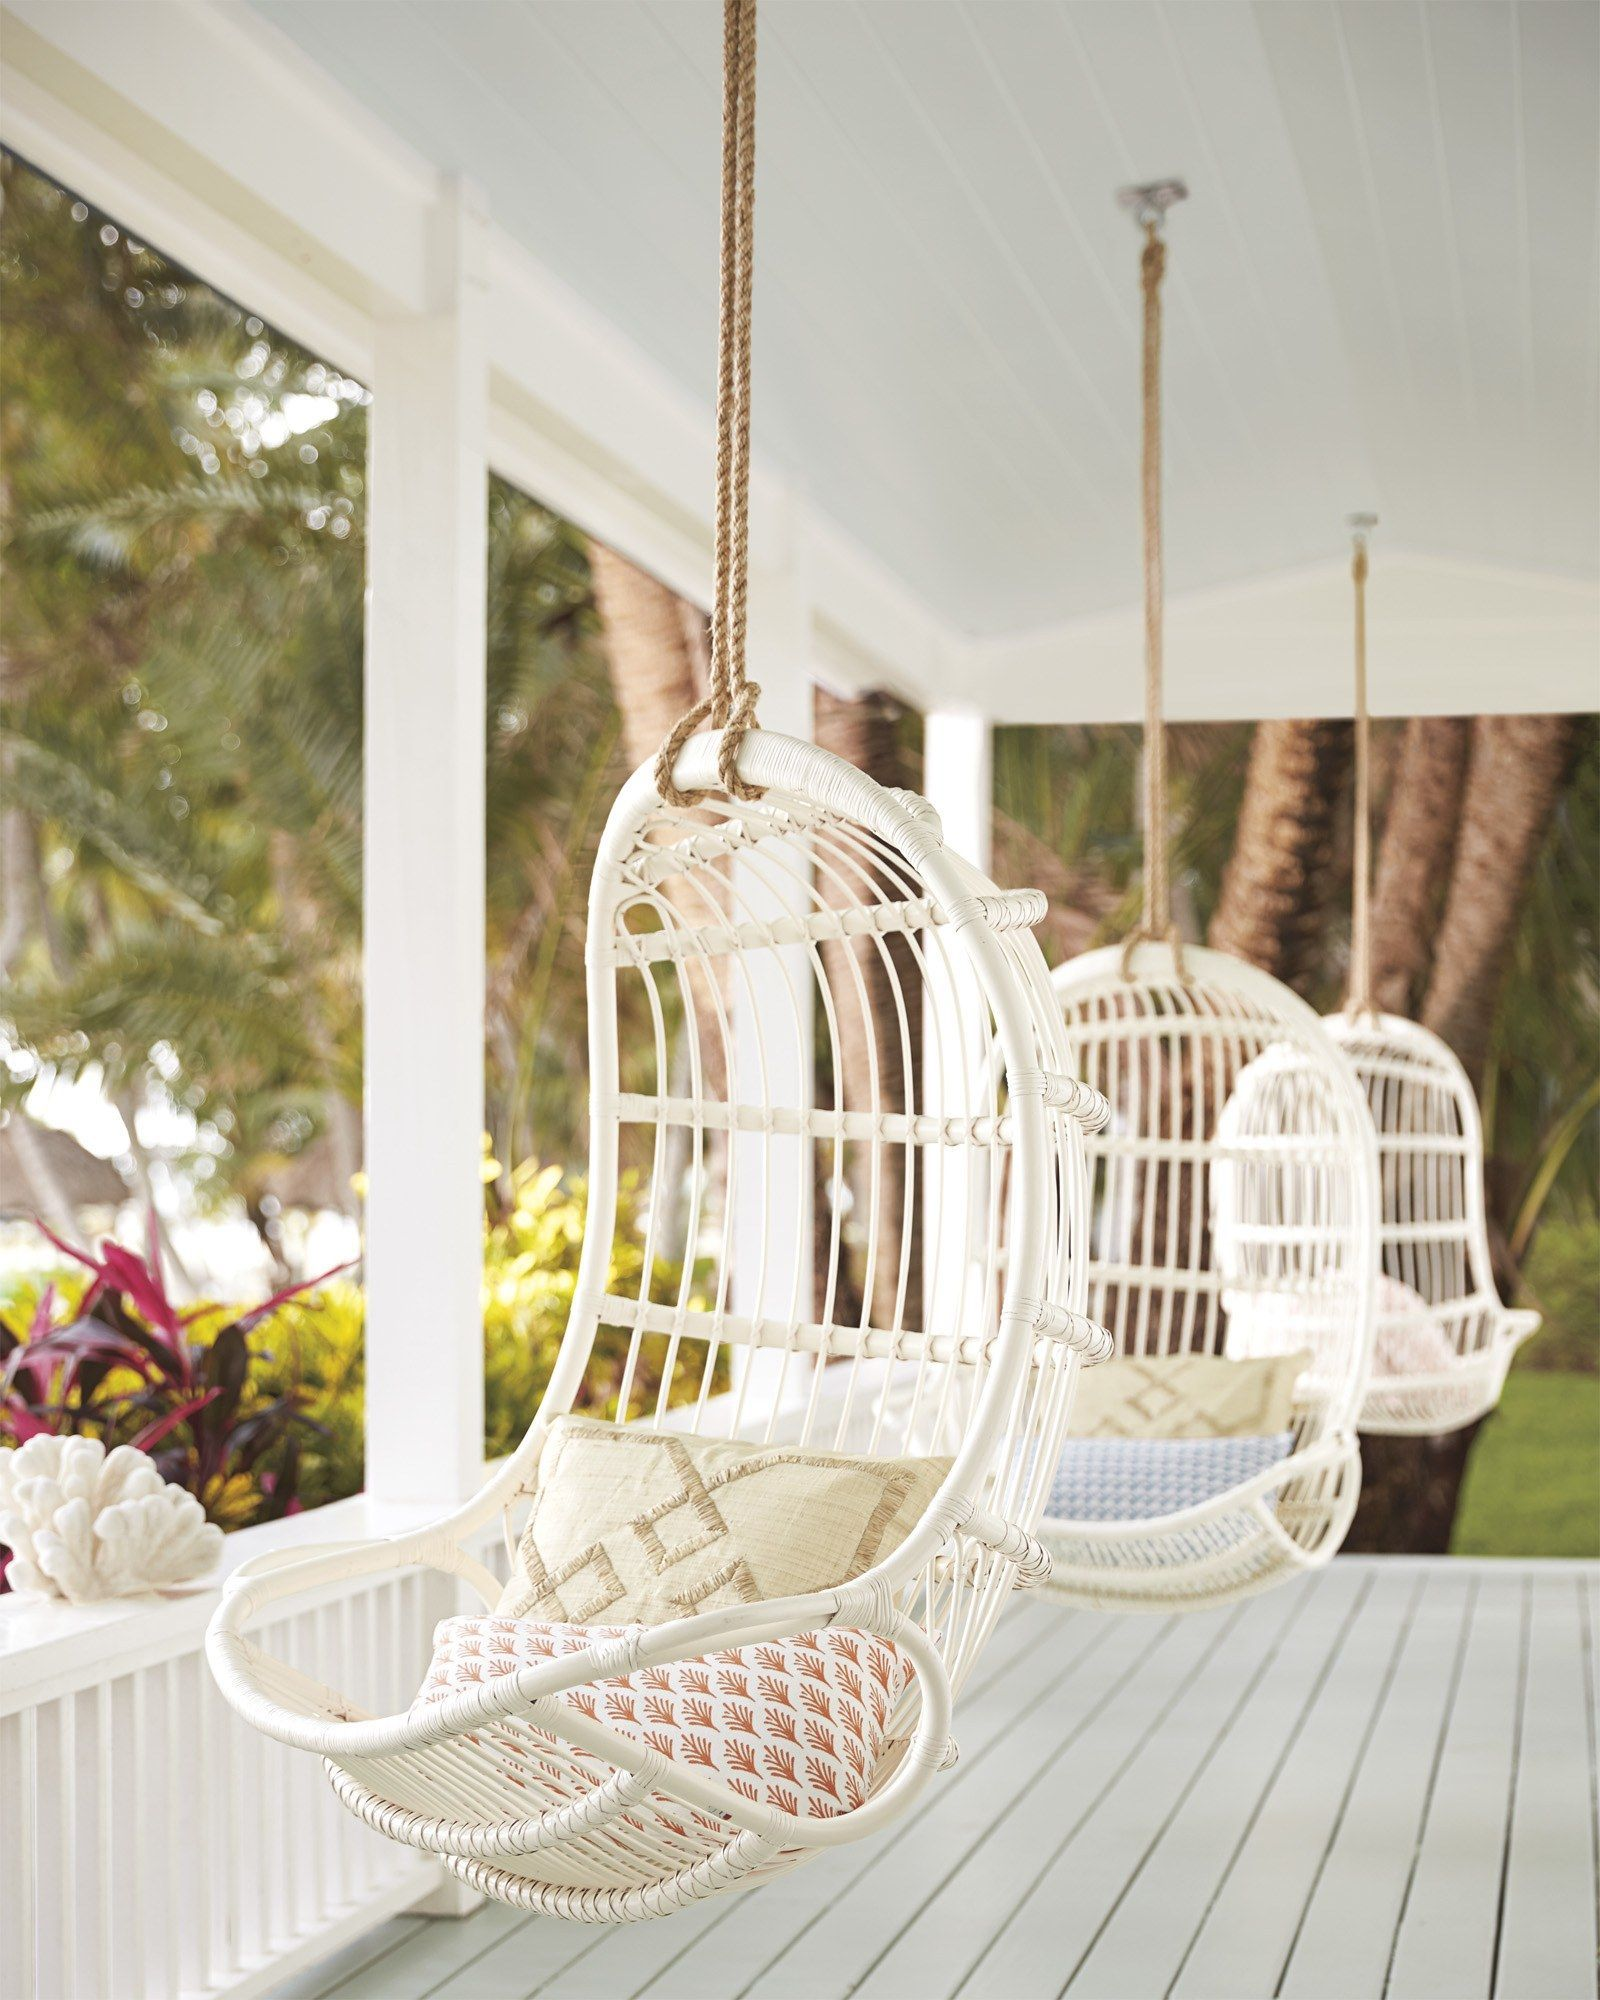 Hanging Chair Serena And Lily Cover Hire Rockhampton 11 Chairs You Ll Never Want To Get Out Of S Scandi Style Rattan Is Handcrafted Comfortably Cradle 495 Archdigest Com